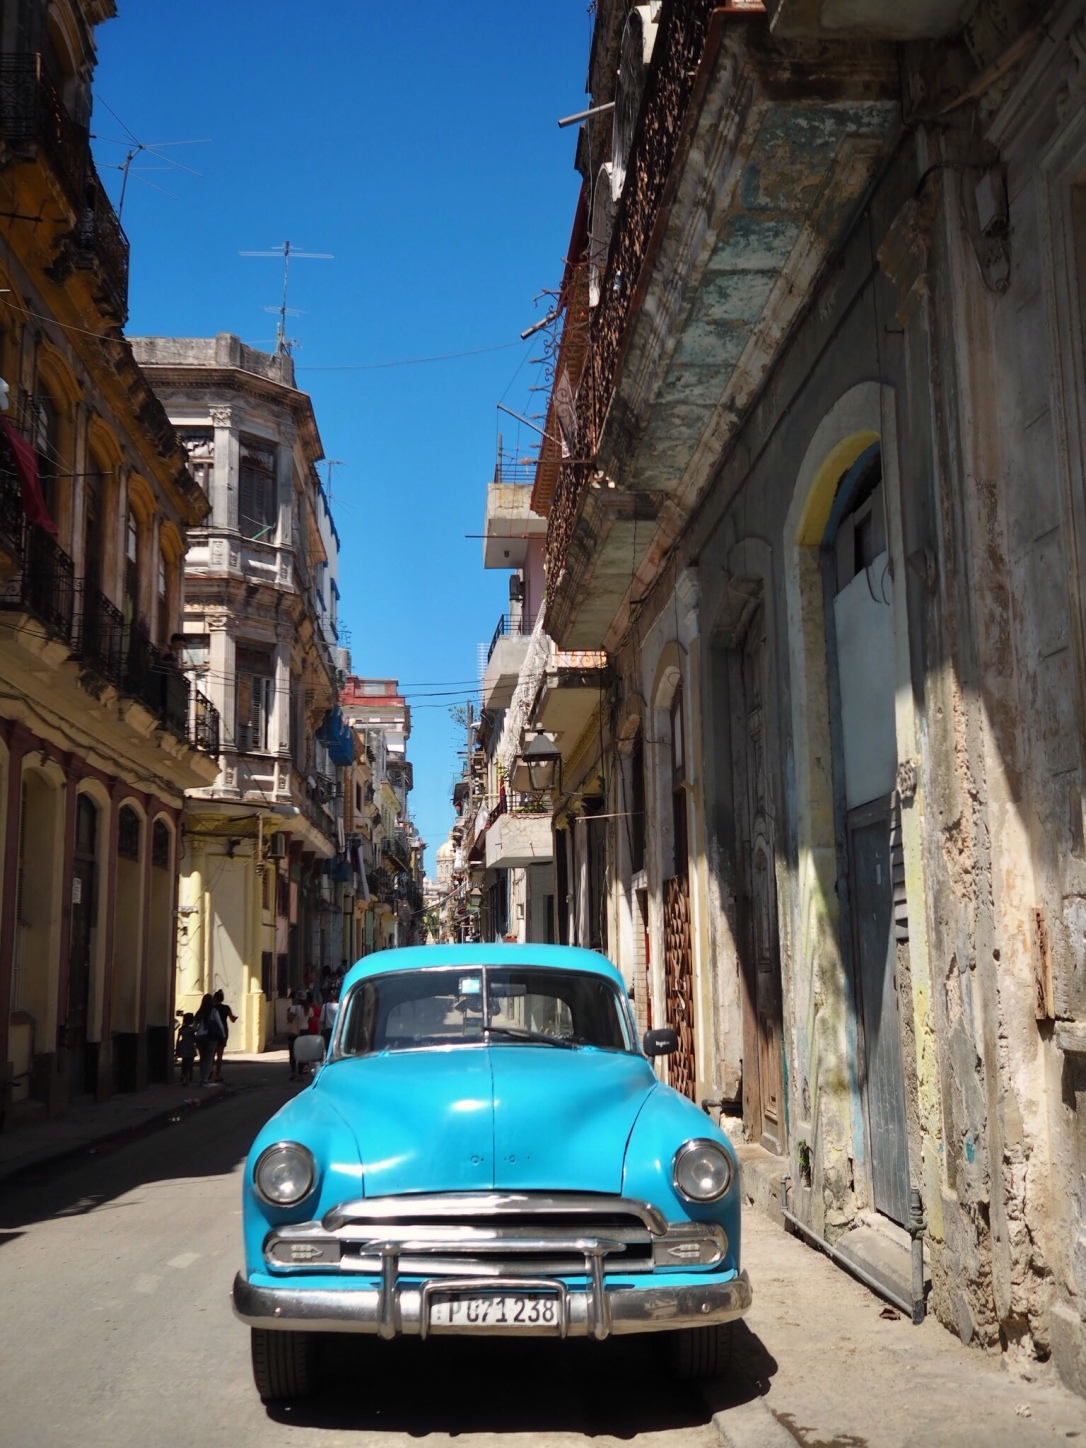 Classic car on the streets of Old Town, Havana